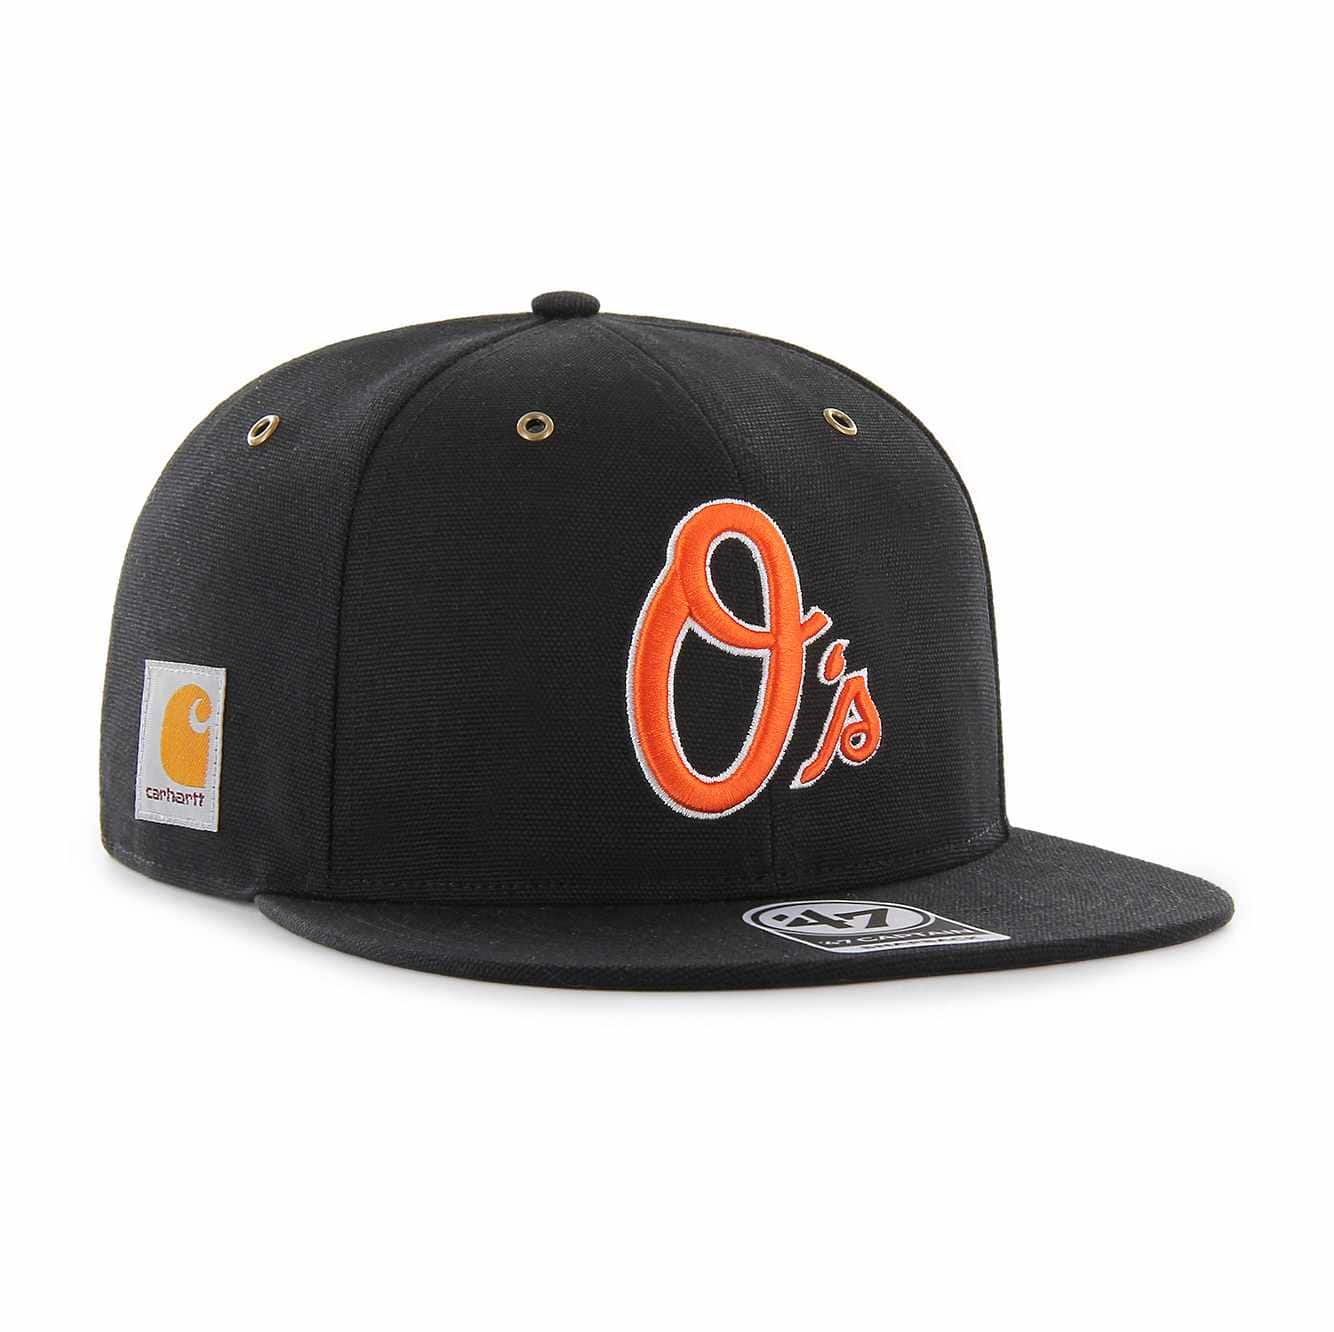 Picture of Baltimore Orioles Carhartt x '47 Captain in Black